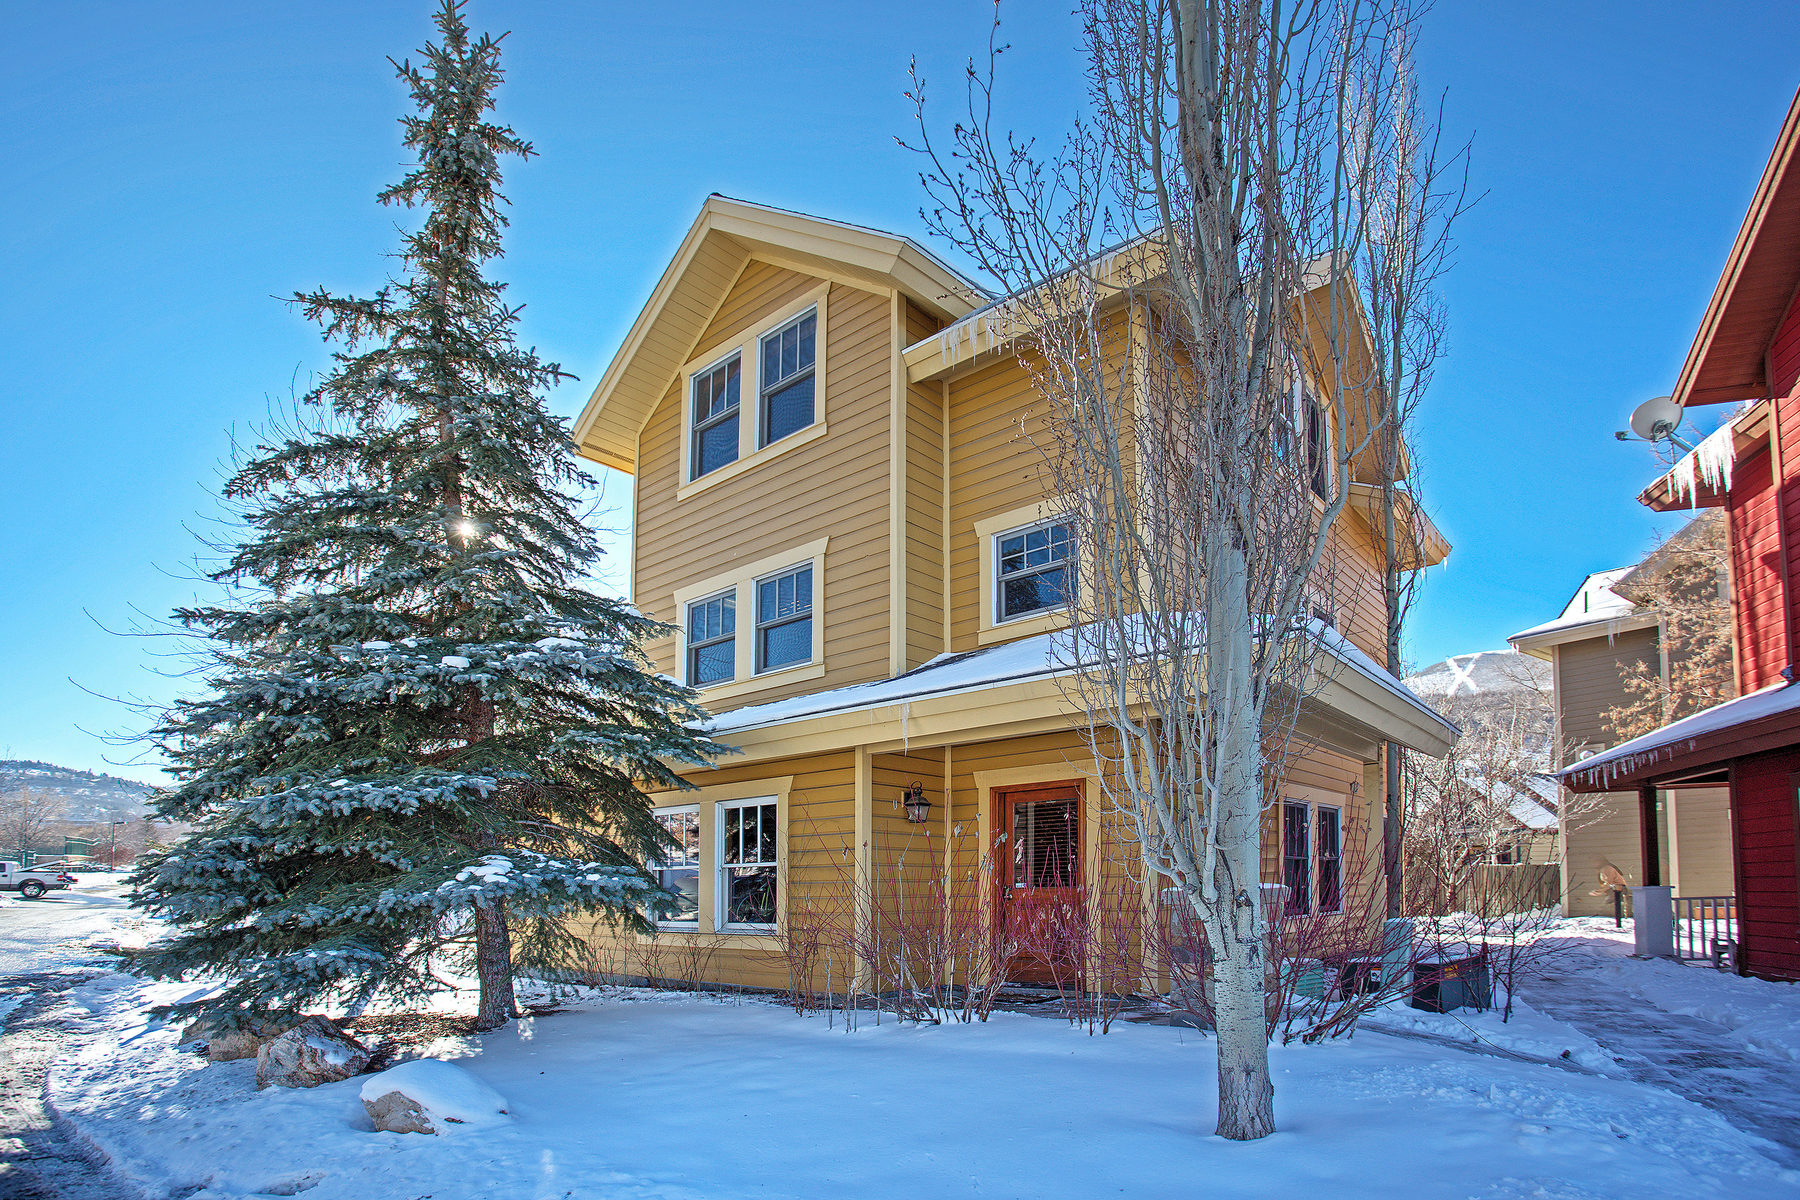 Single Family Home for Sale at Ski Run Views, Walk to Main Street, Resort, City Park 1311 Sullivan Rd Park City, Utah 84060 United States